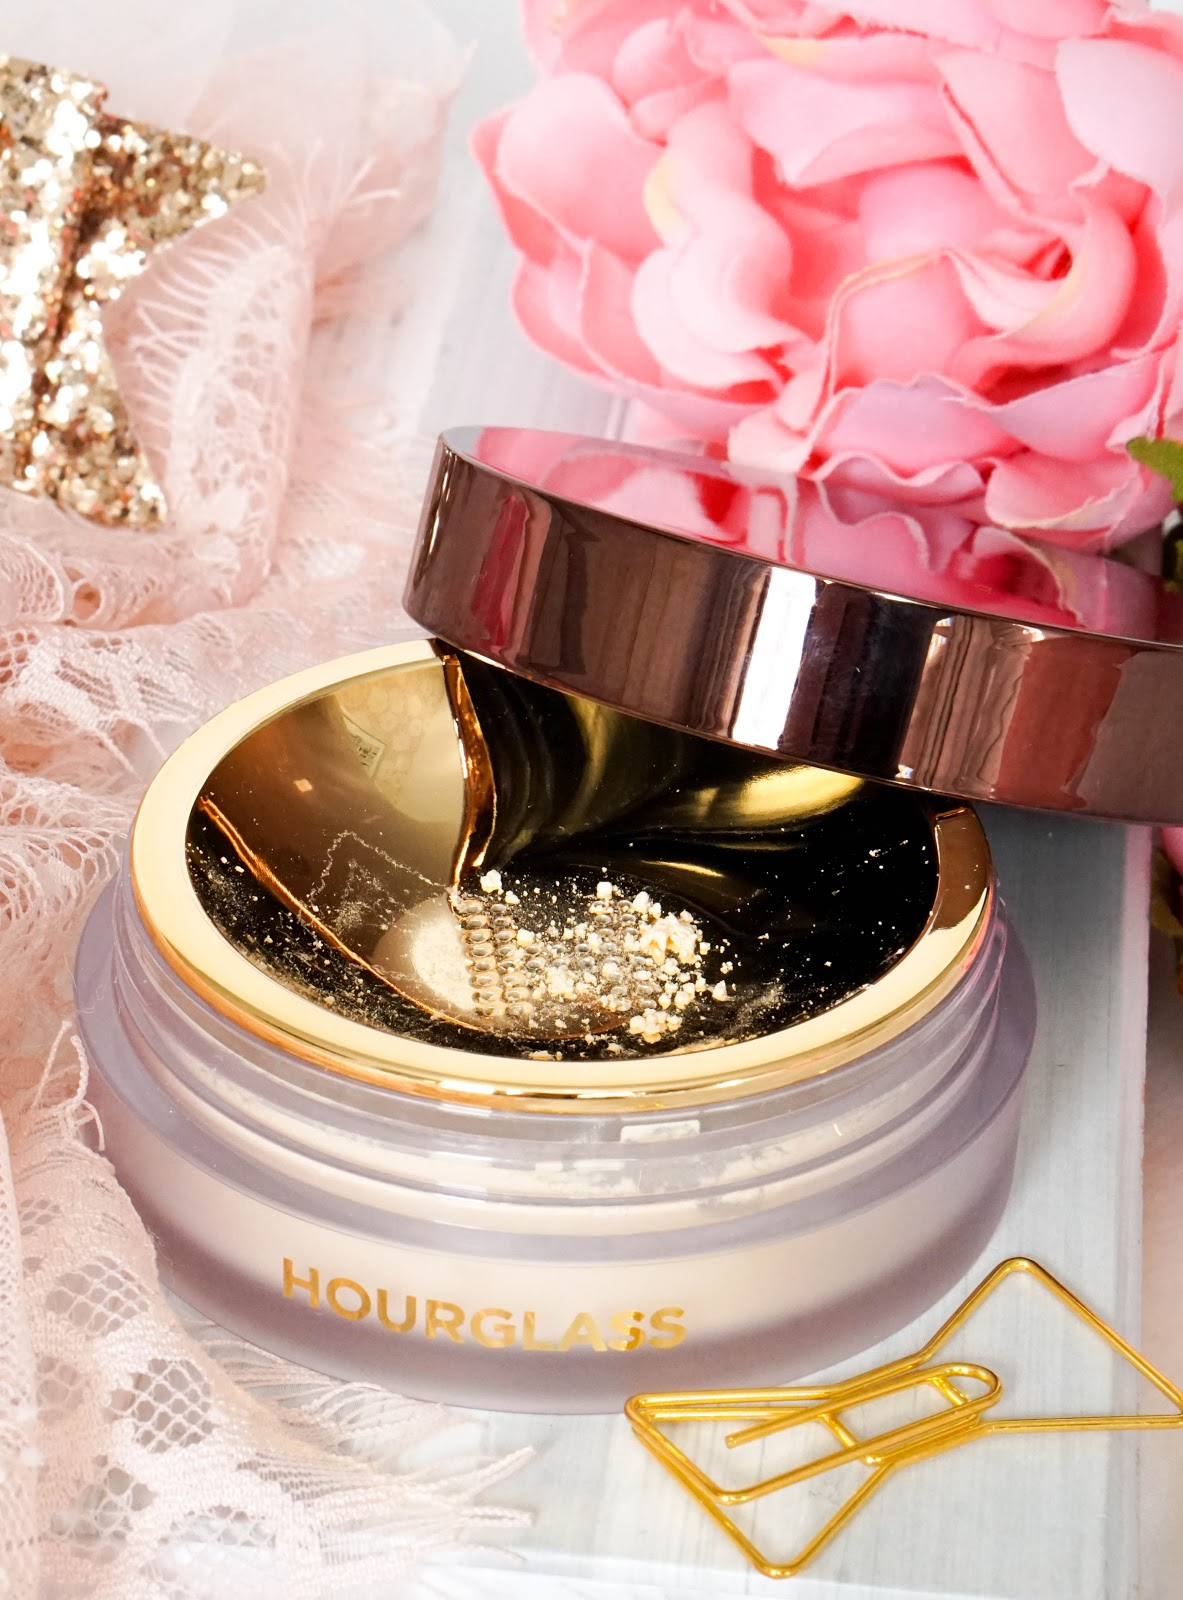 Hourglass Magic of Veil, Veil Retouching Fluid, Veil Translucent Setting Powder